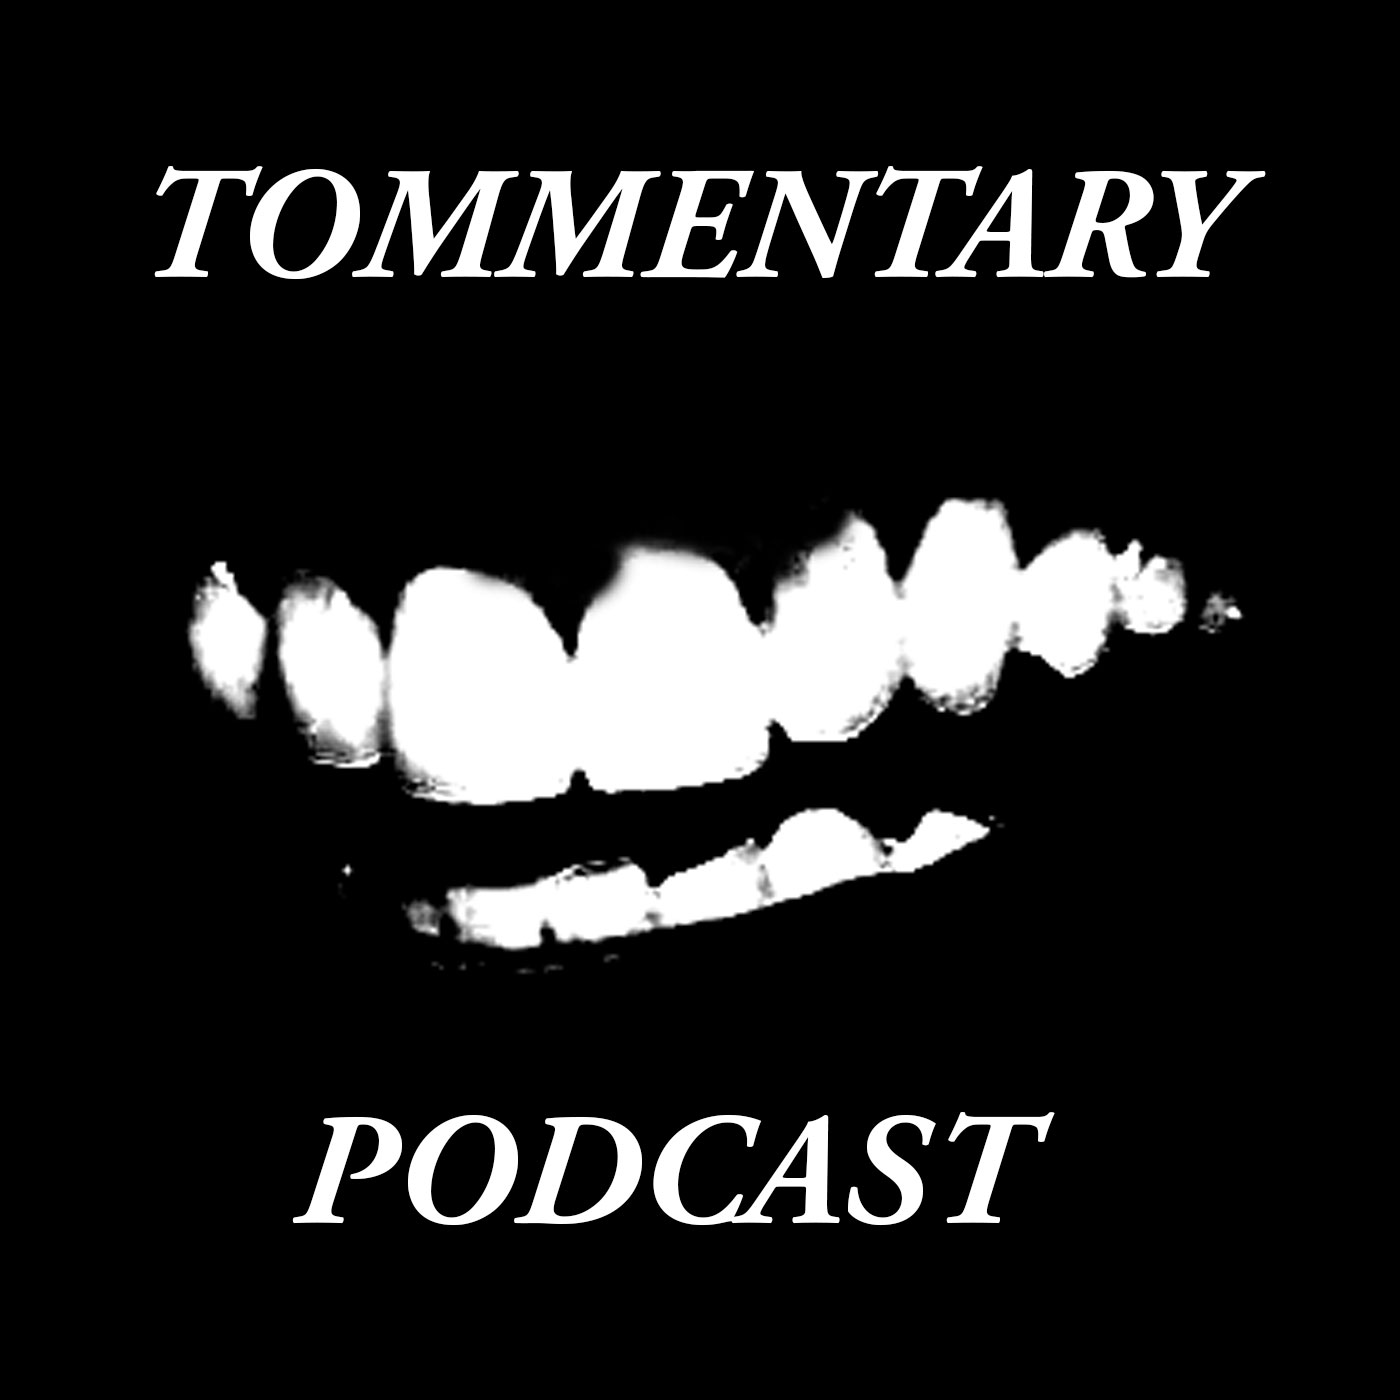 Tommentary Podcast